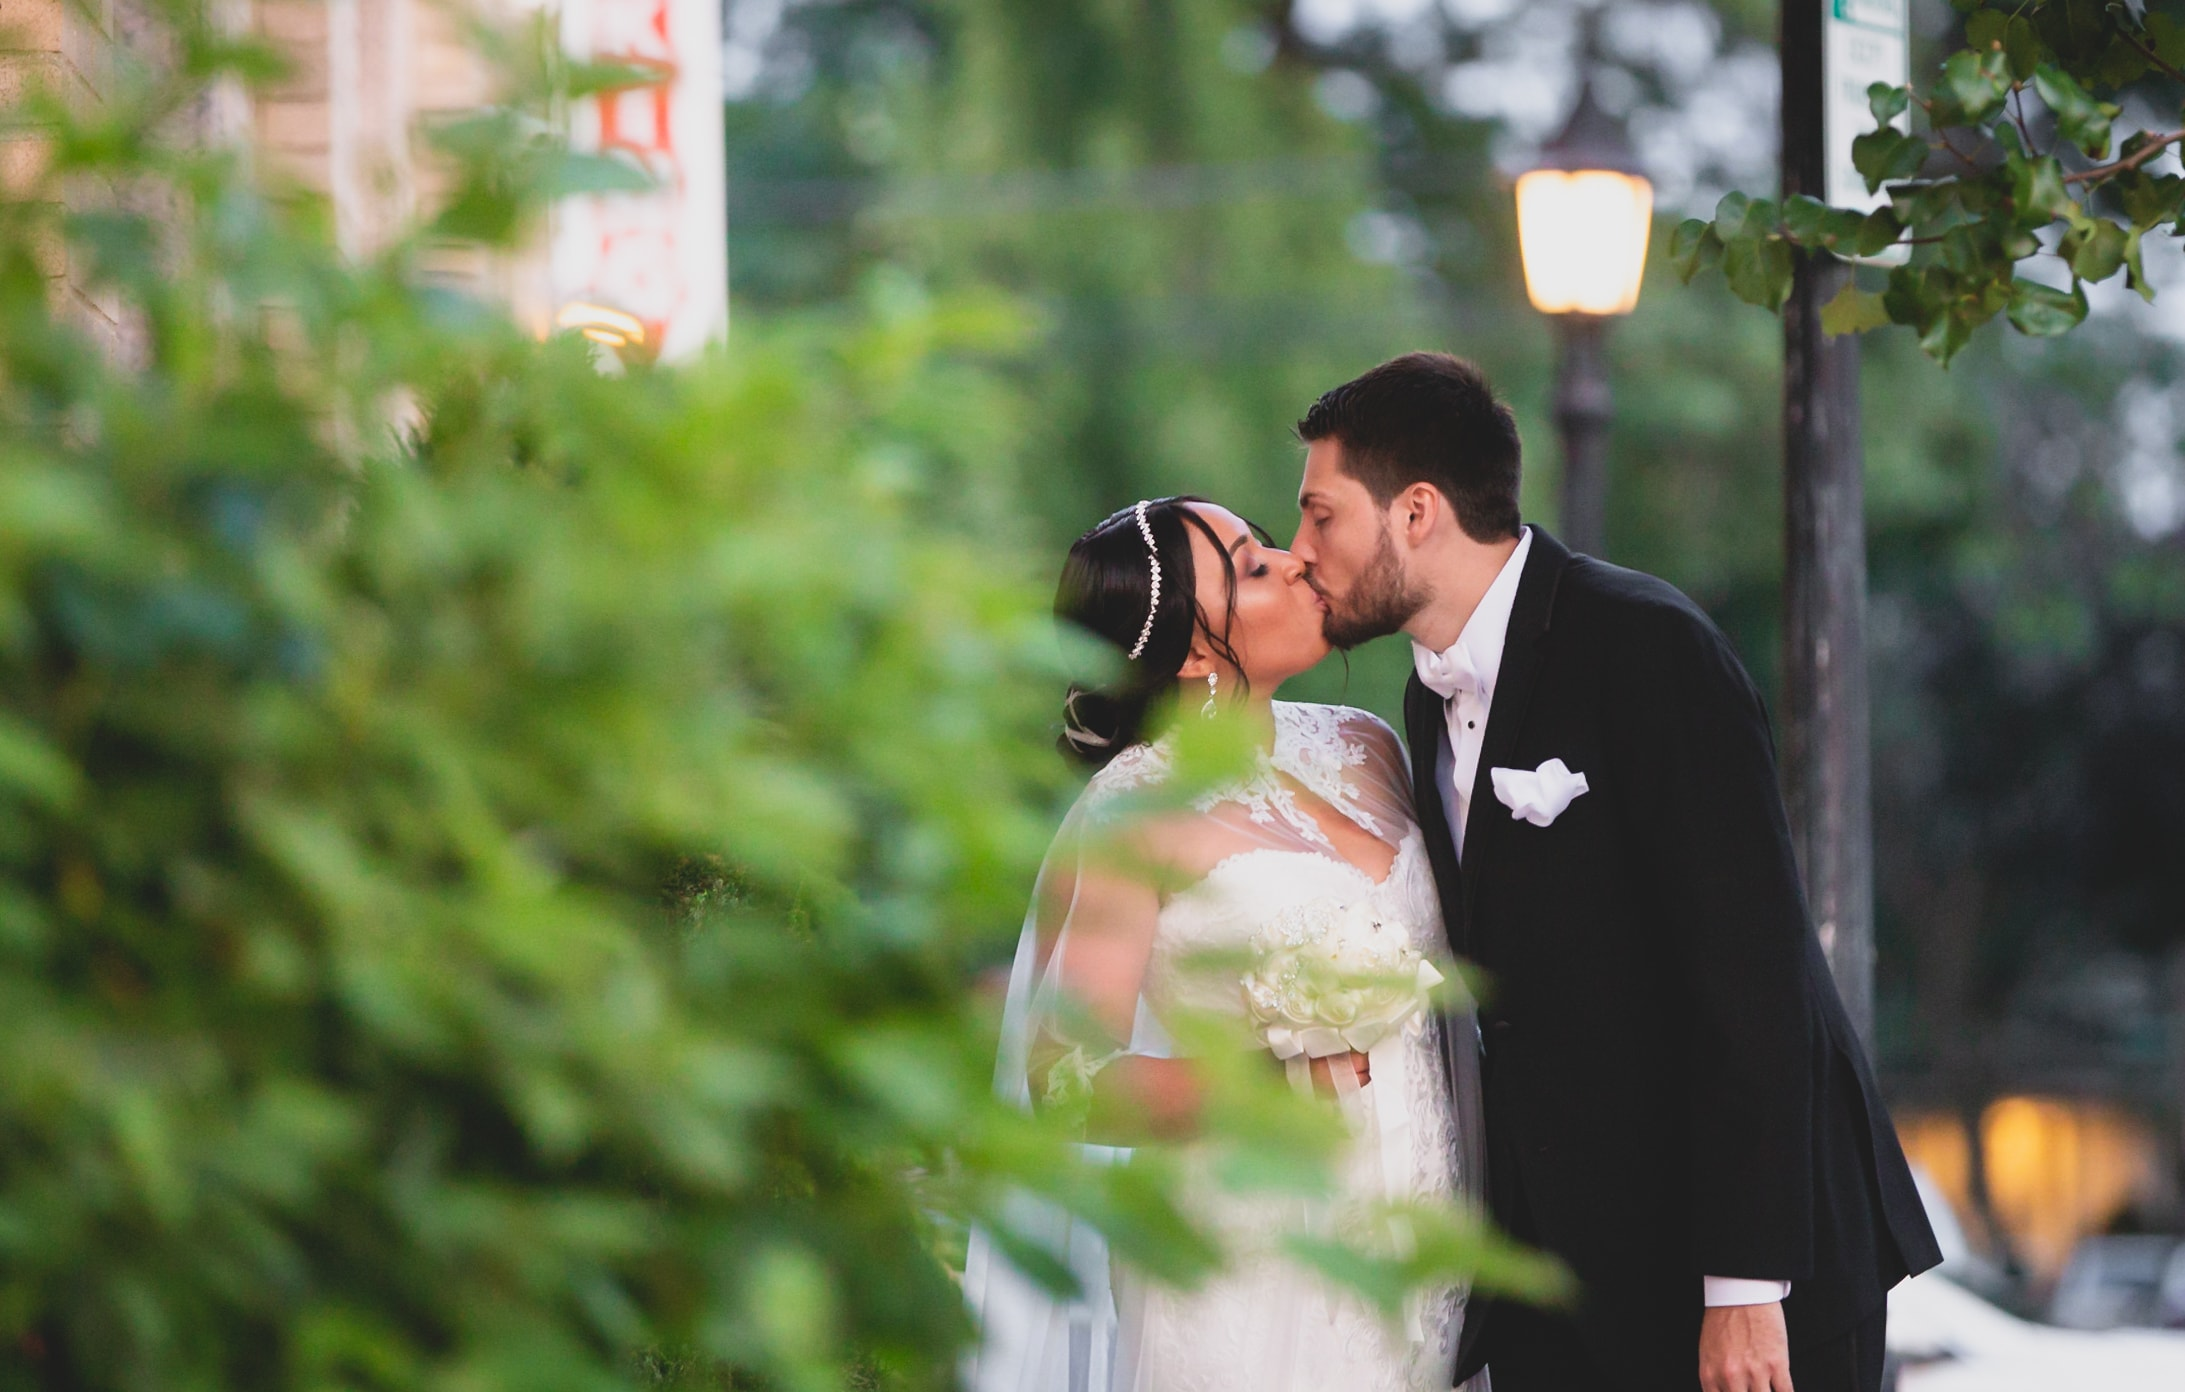 Bride and groom kissing under a streetlight.